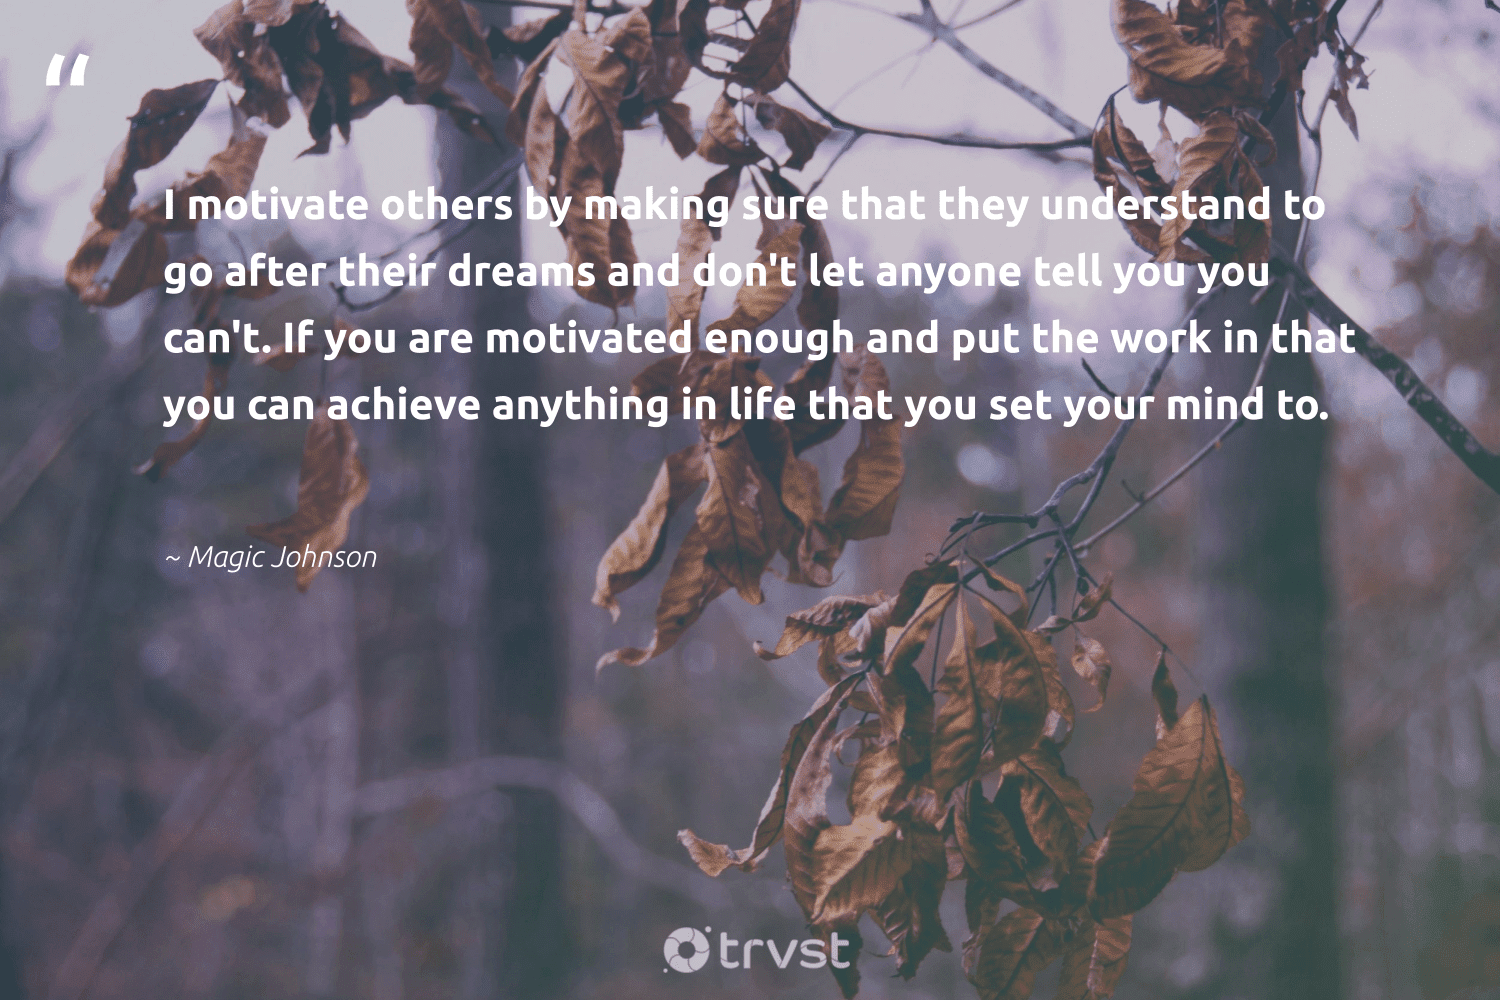 """""""I motivate others by making sure that they understand to go after their dreams and don't let anyone tell you you can't. If you are motivated enough and put the work in that you can achieve anything in life that you set your mind to.""""  - Magic Johnson #trvst #quotes #softskills #collectiveaction #begreat #changetheworld #nevergiveup #dosomething #futureofwork #thinkgreen #dotherightthing #socialimpact"""